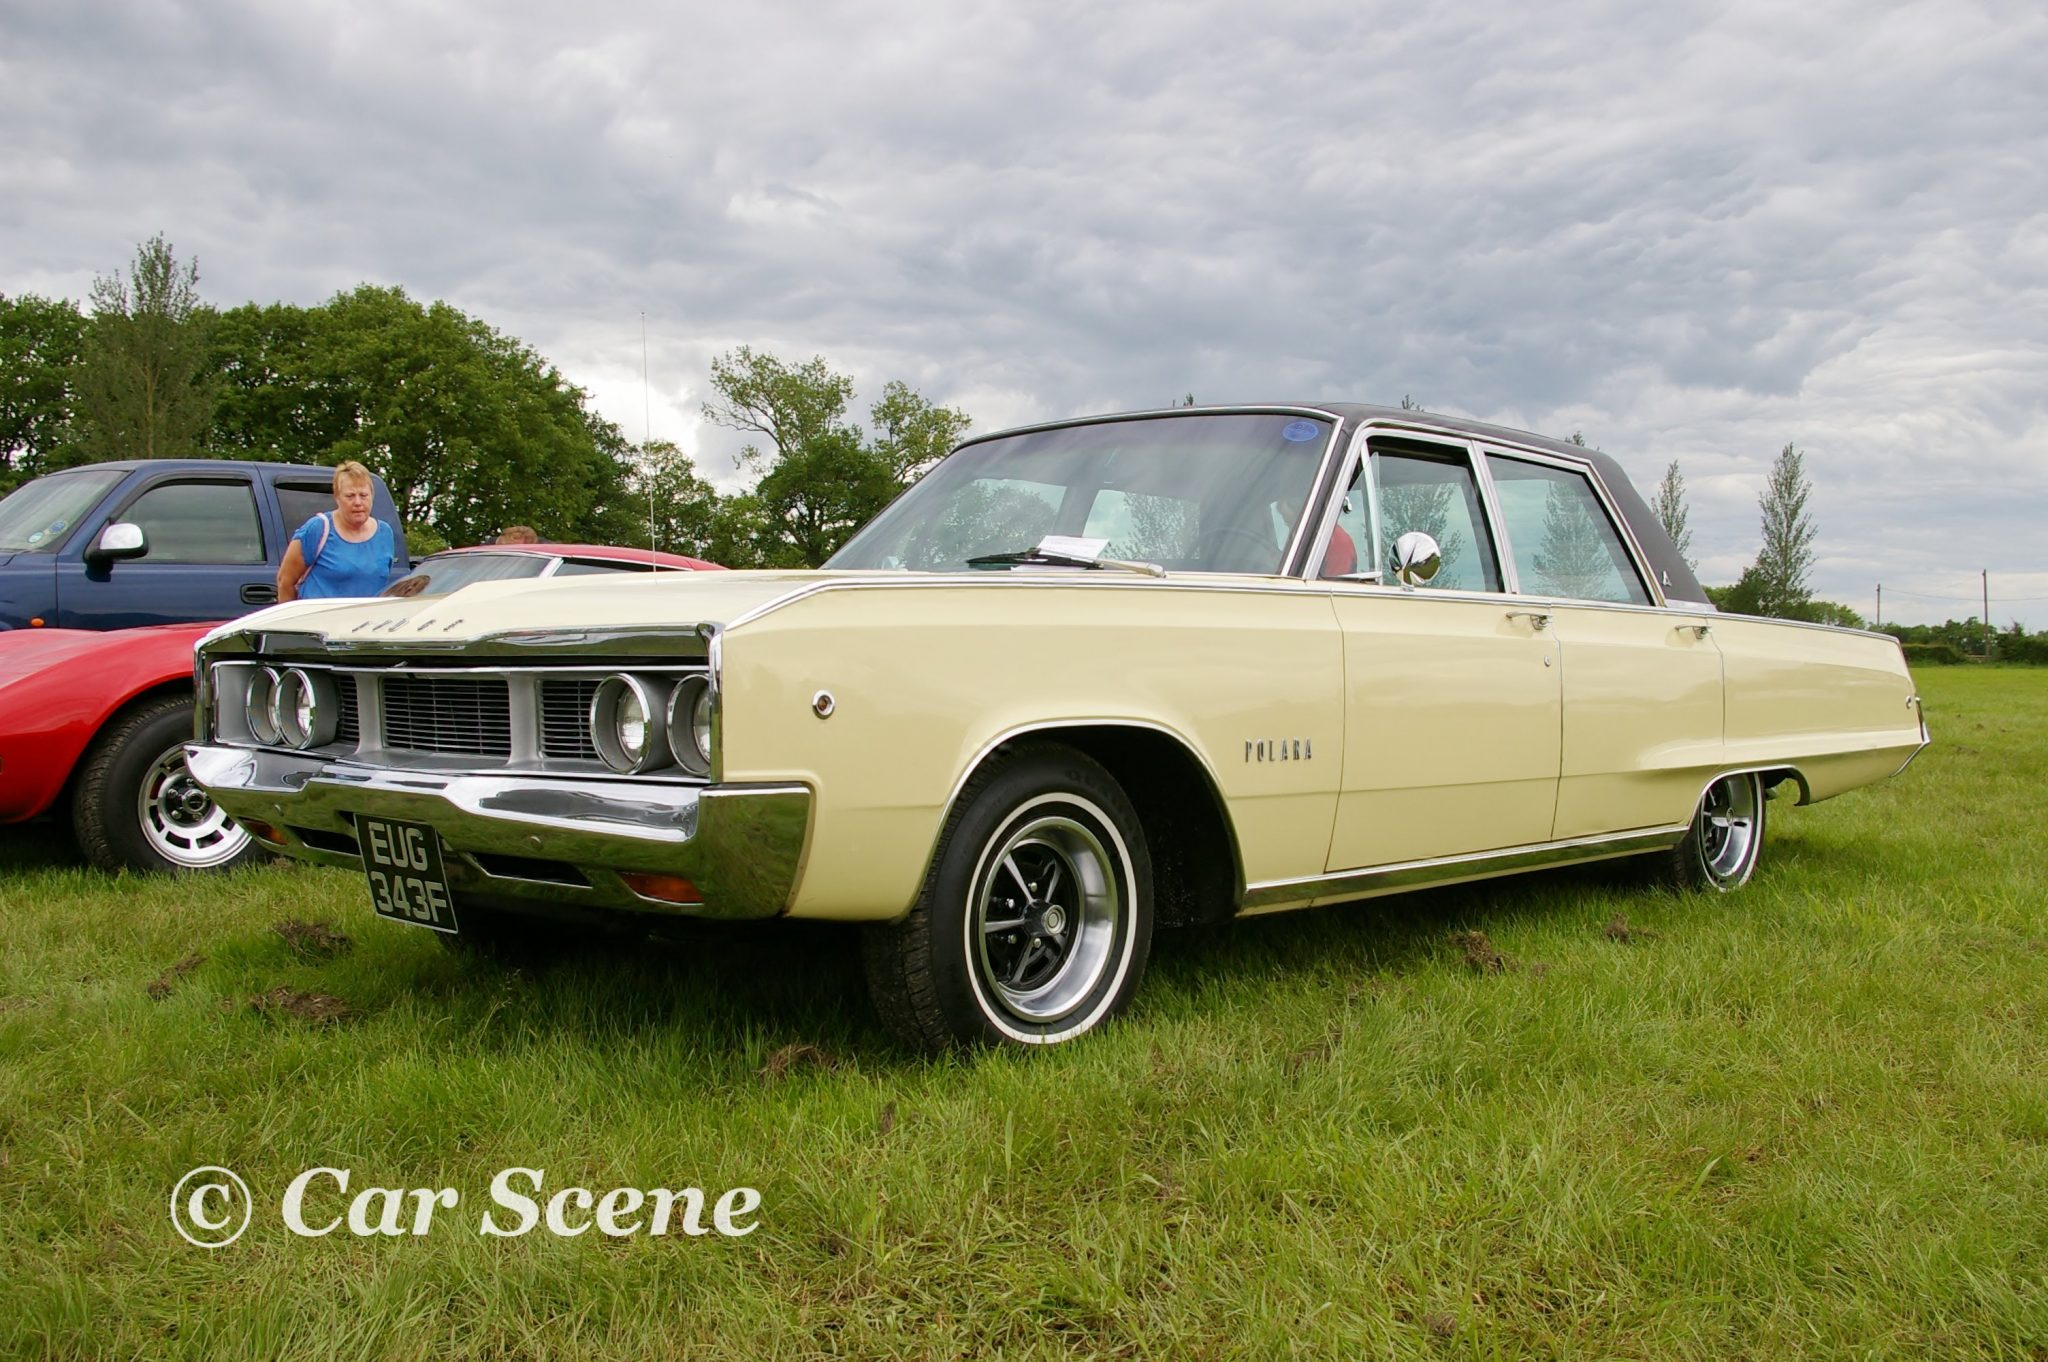 1968 Dodge Polara 4 door sedan front three quarter view